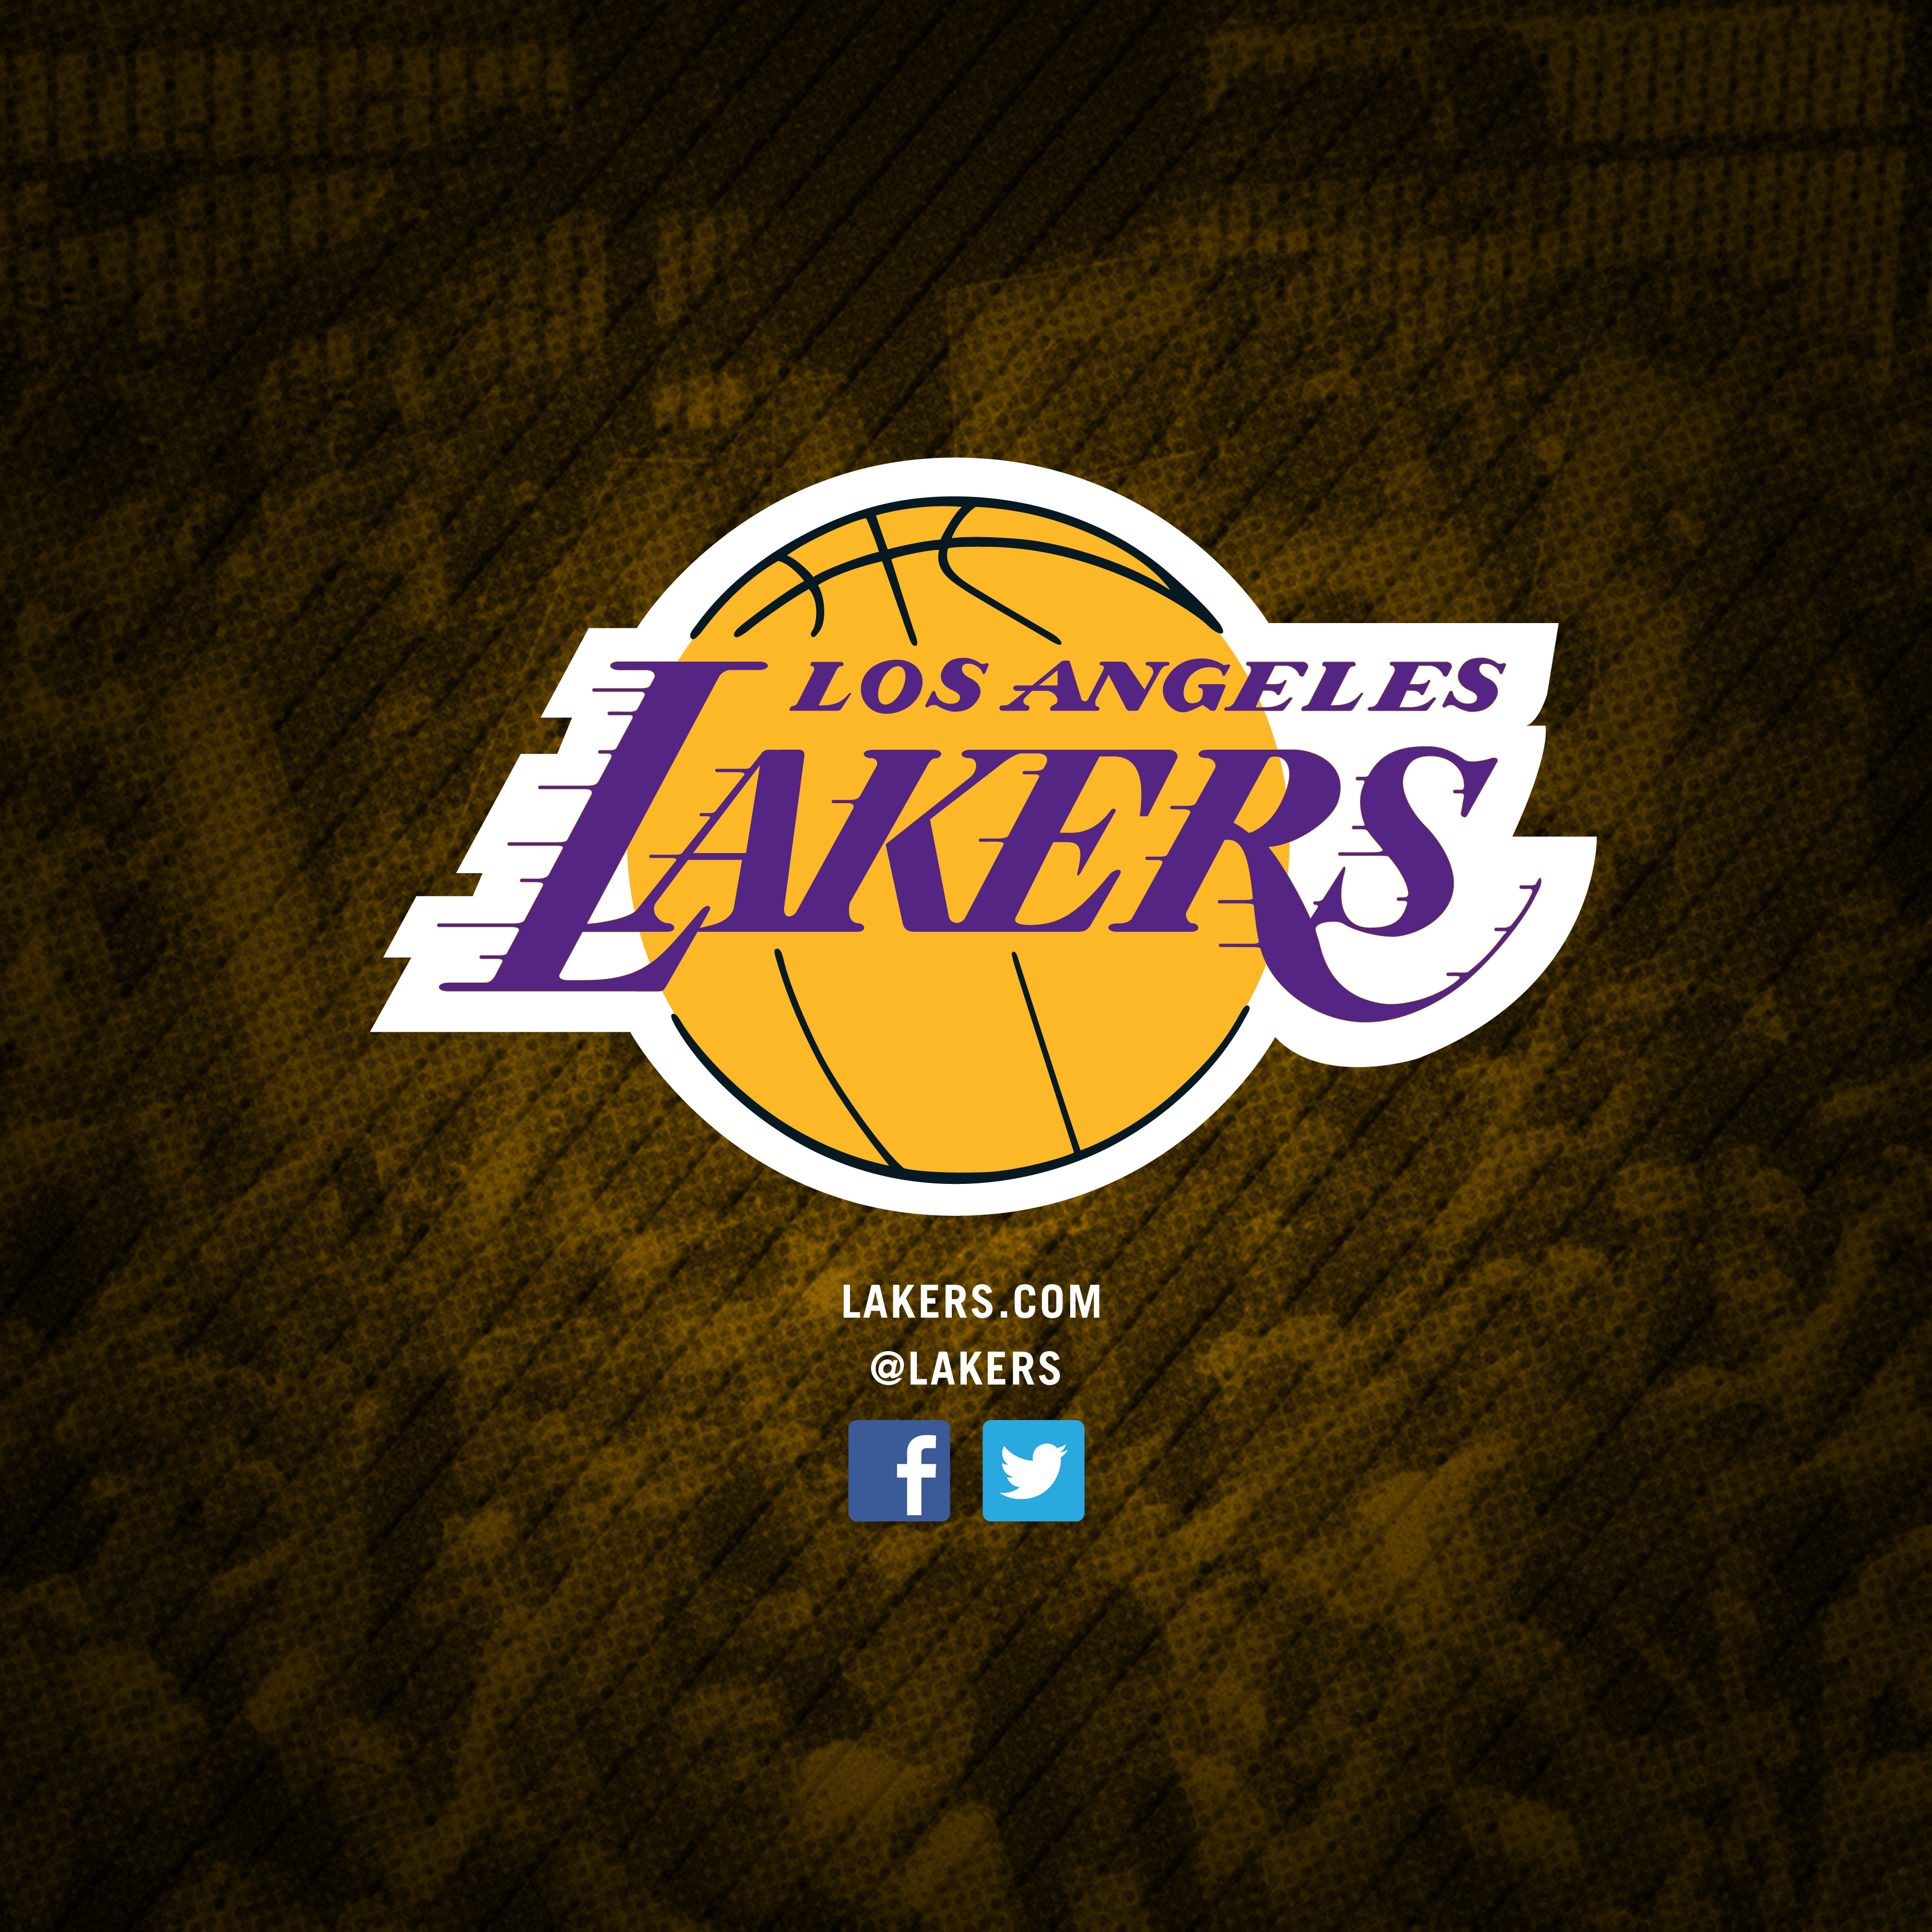 lakers mobile wallpaper